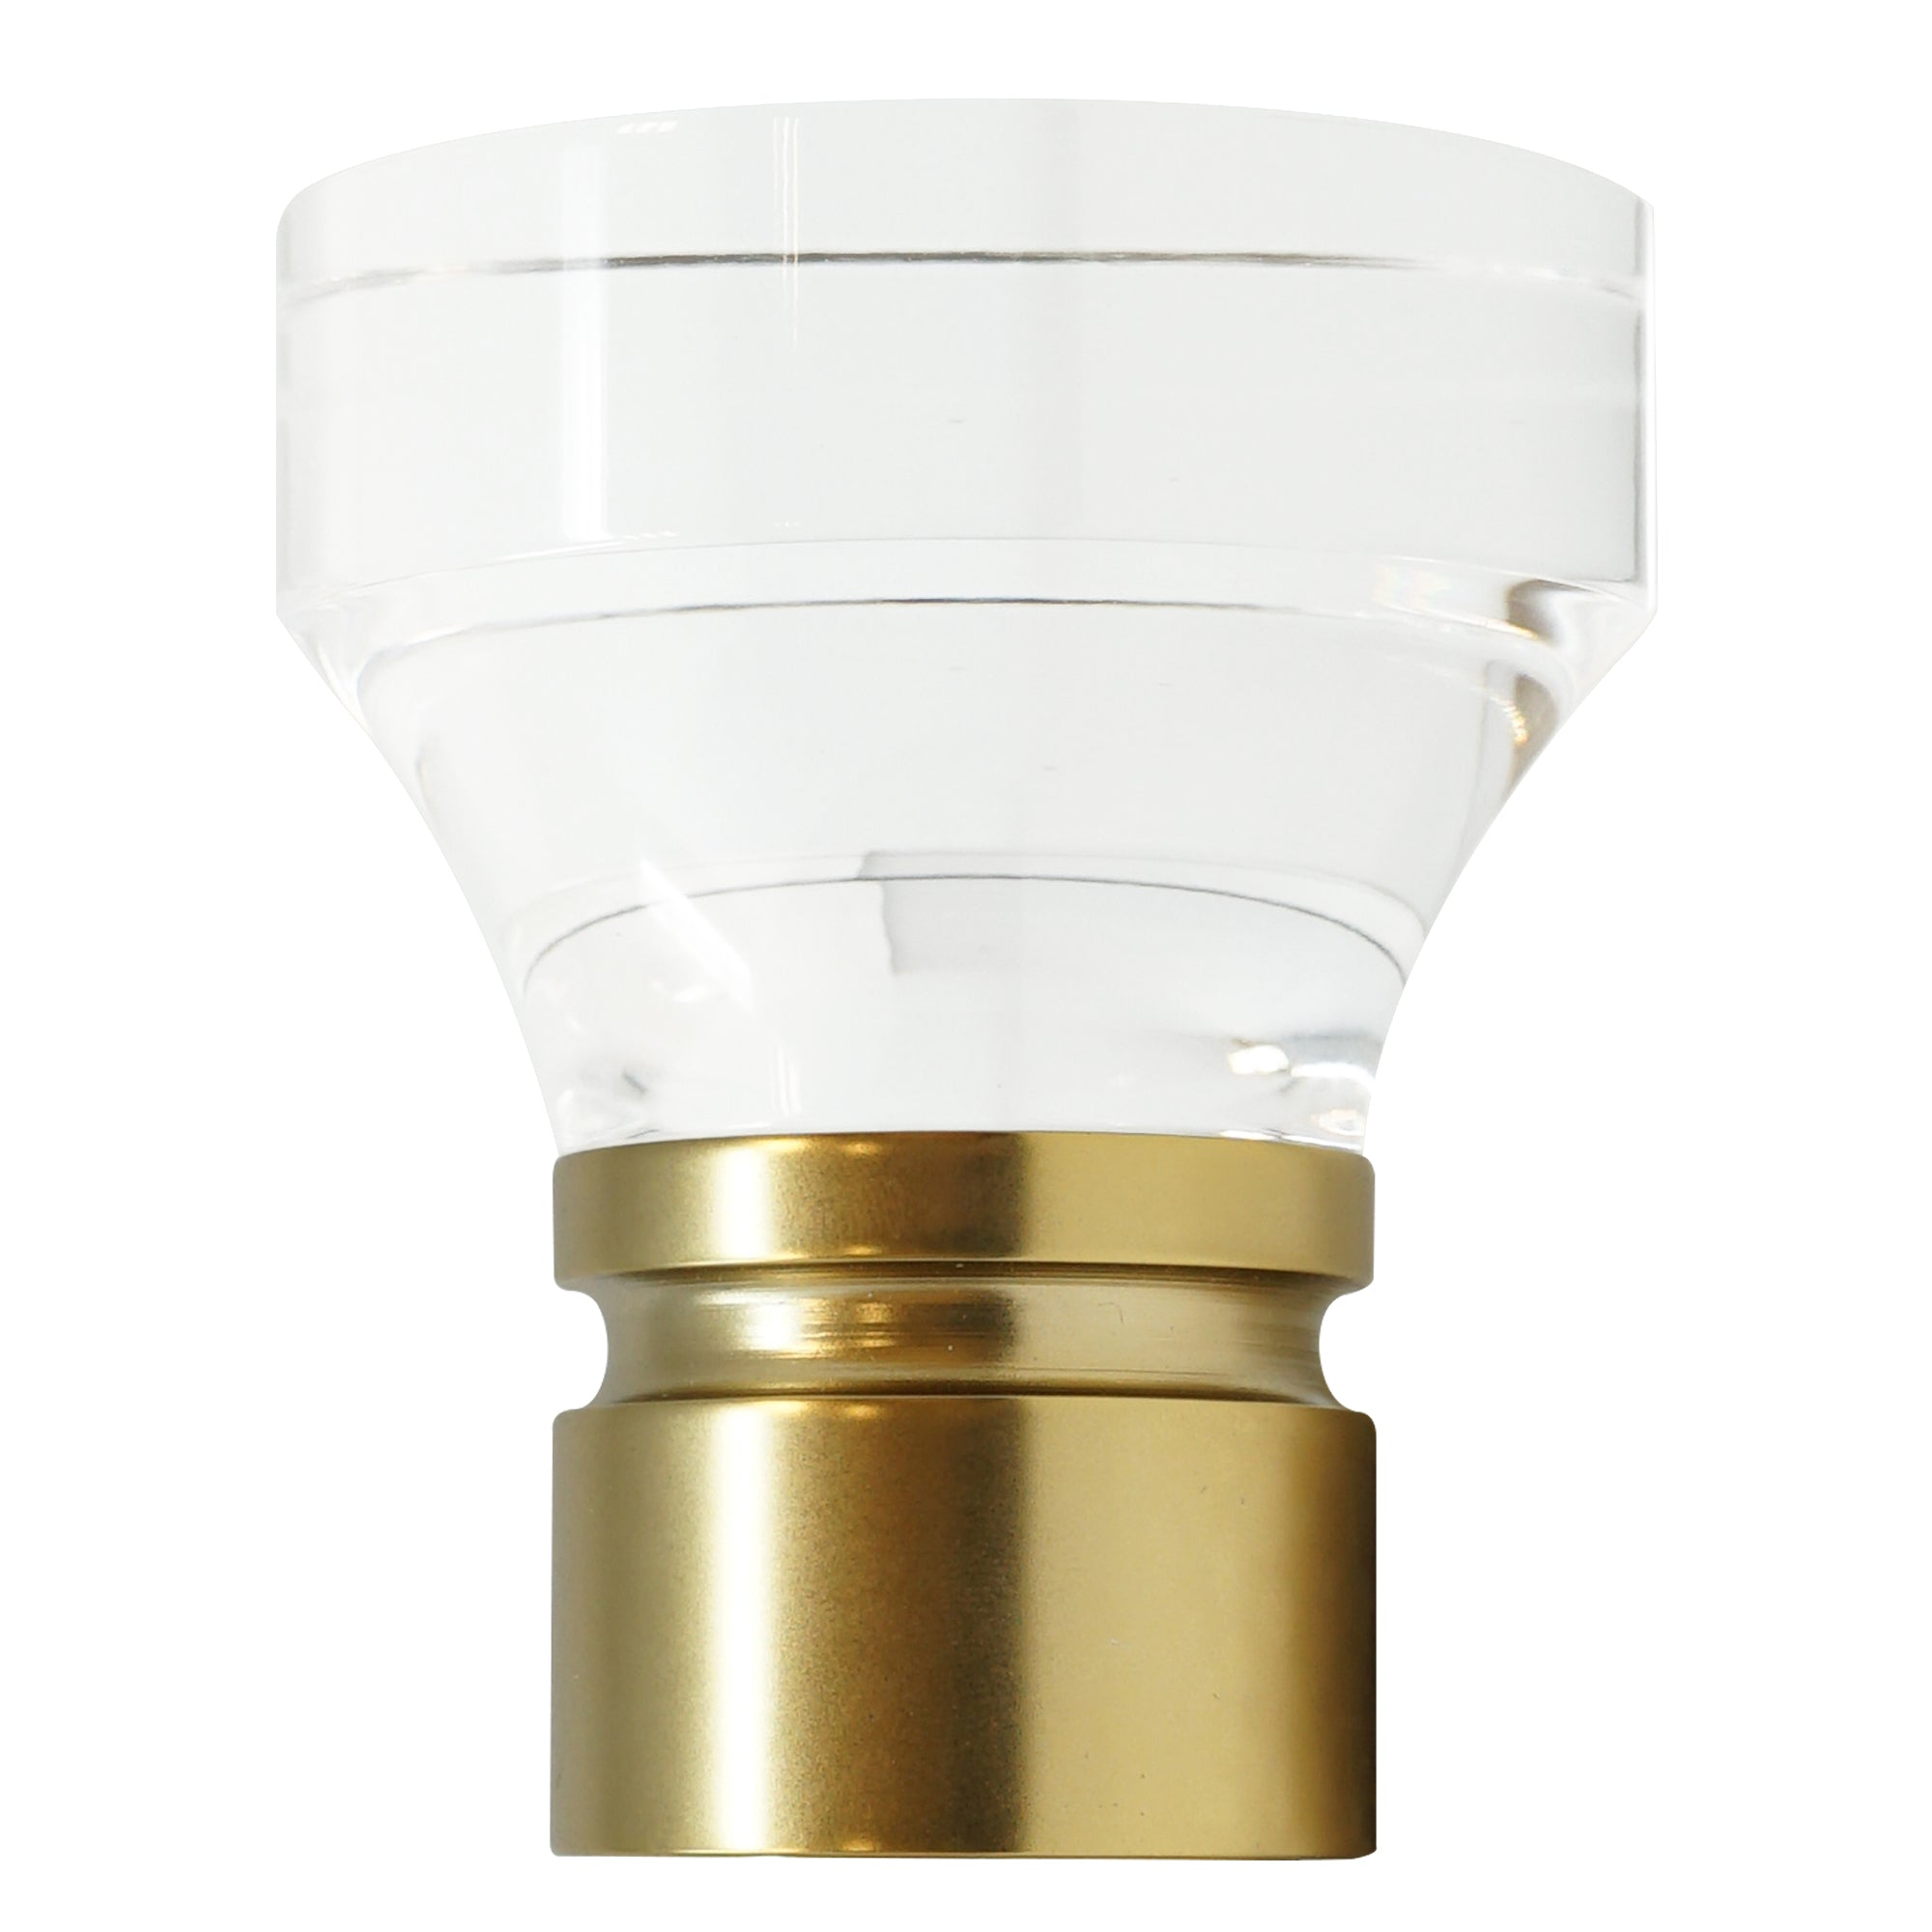 Acrylic Trumpet Finial - Satin Brass Finish